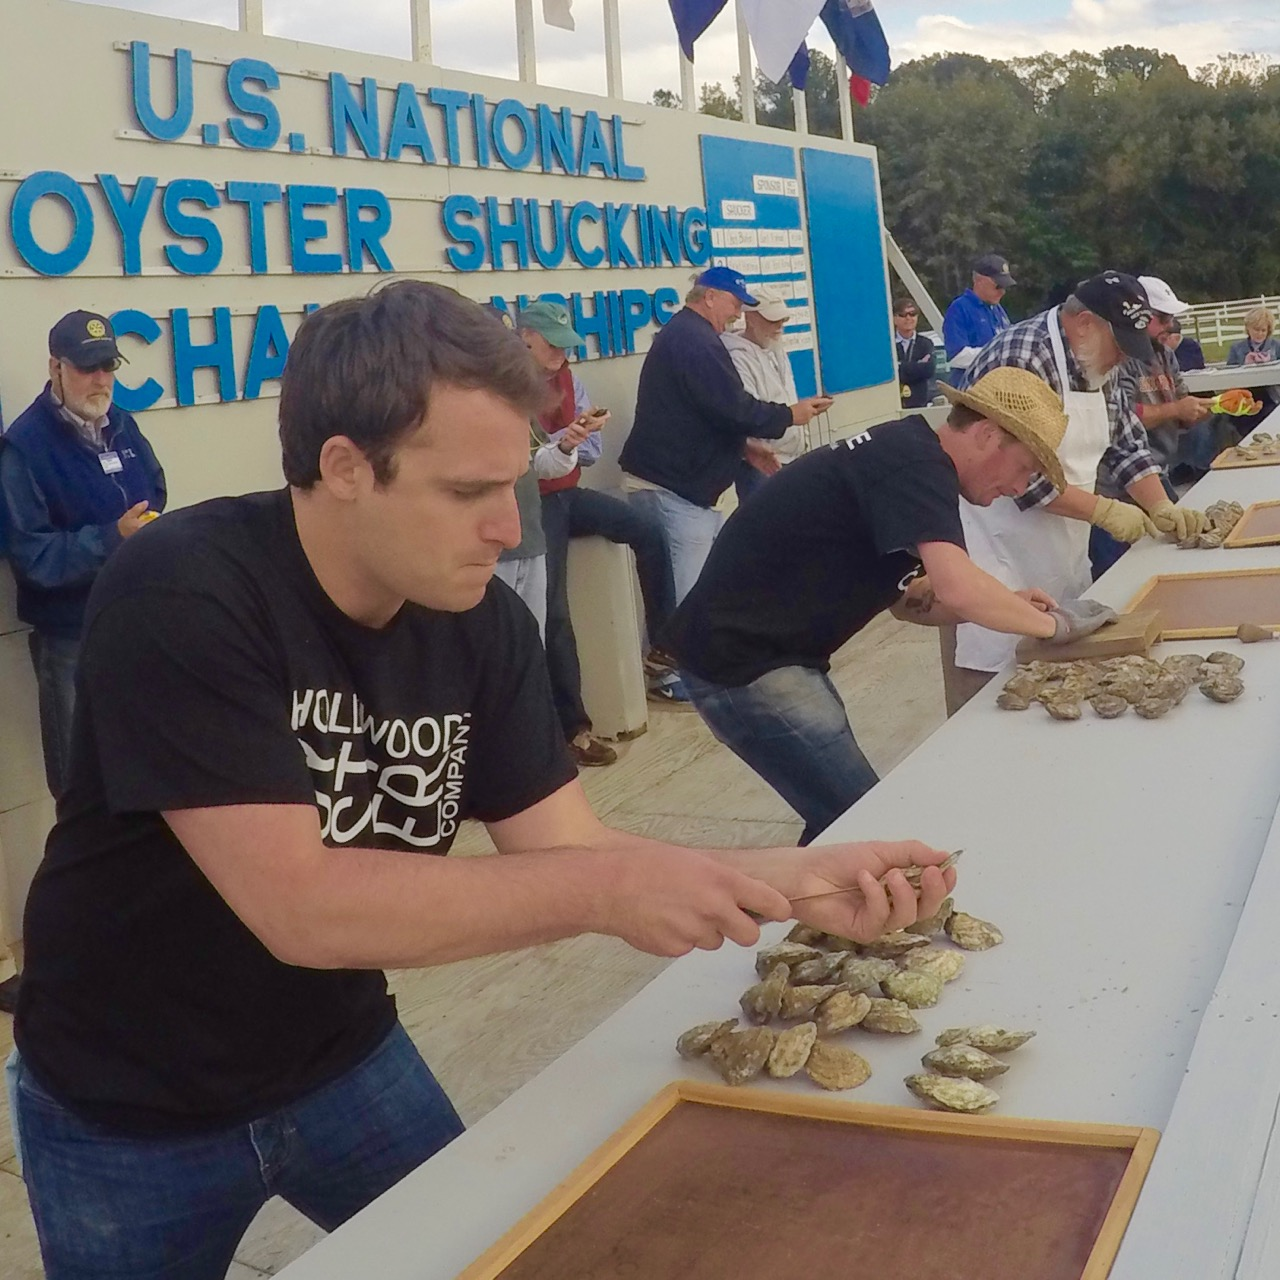 2016 U.S. NATIONAL OYSTER SHUCKING CONTEST U.s. Oyster Shucking Championship